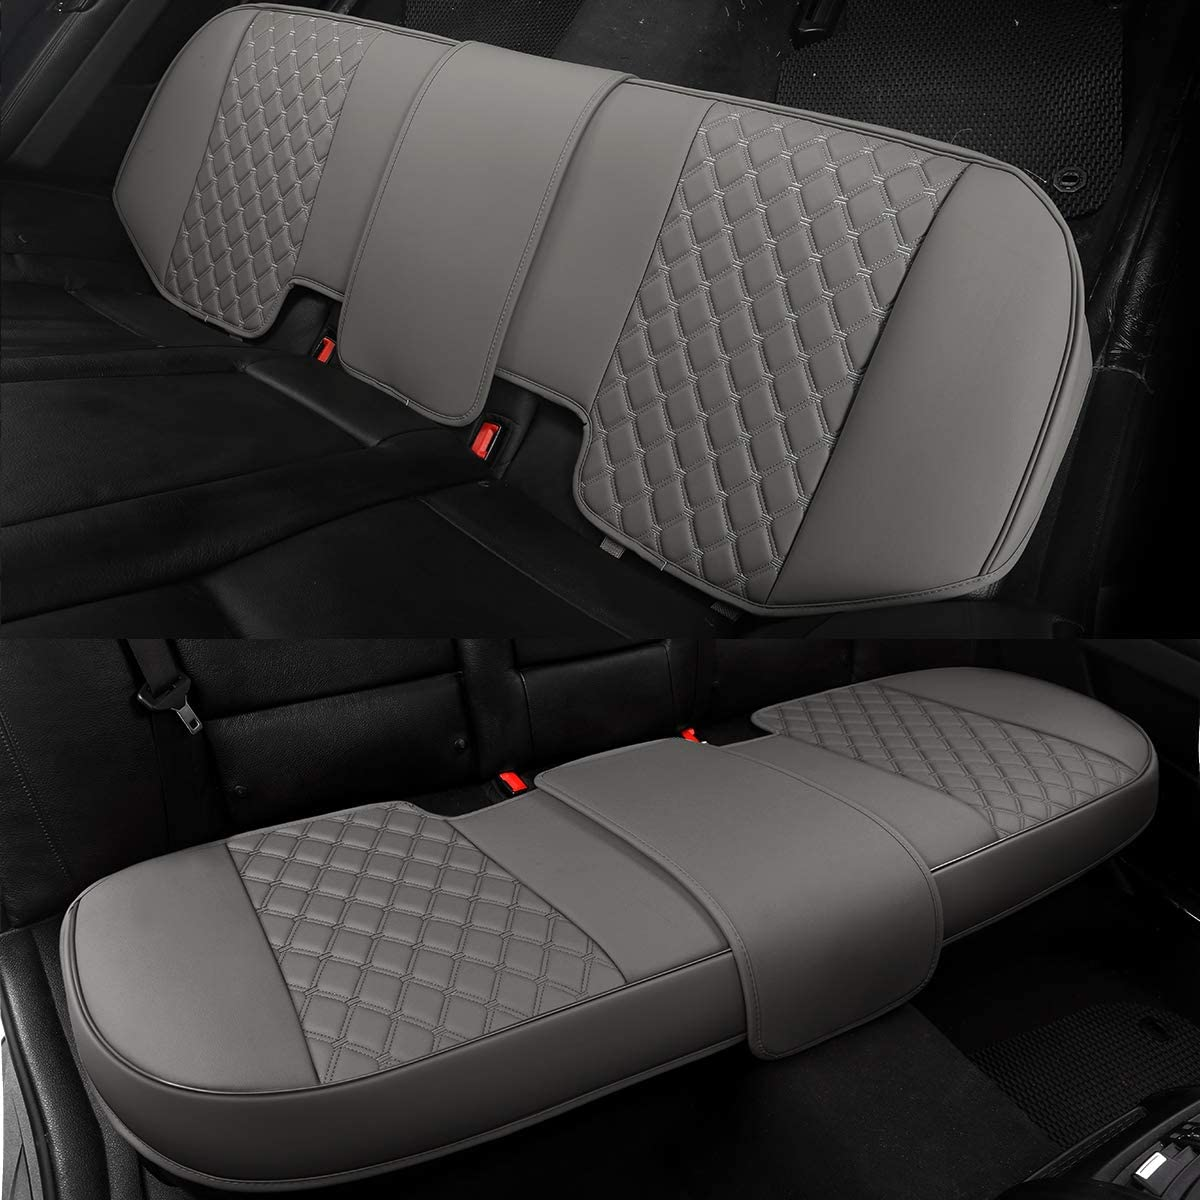 49-55 Back Bench Seat Protector Fits 90/% Standard Two-seat Rear Row Gray Black Panther Luxury PU Leather Rear Car Seat Cover Adjustable Length for Seat Bottom Only Triangle Quilted Design